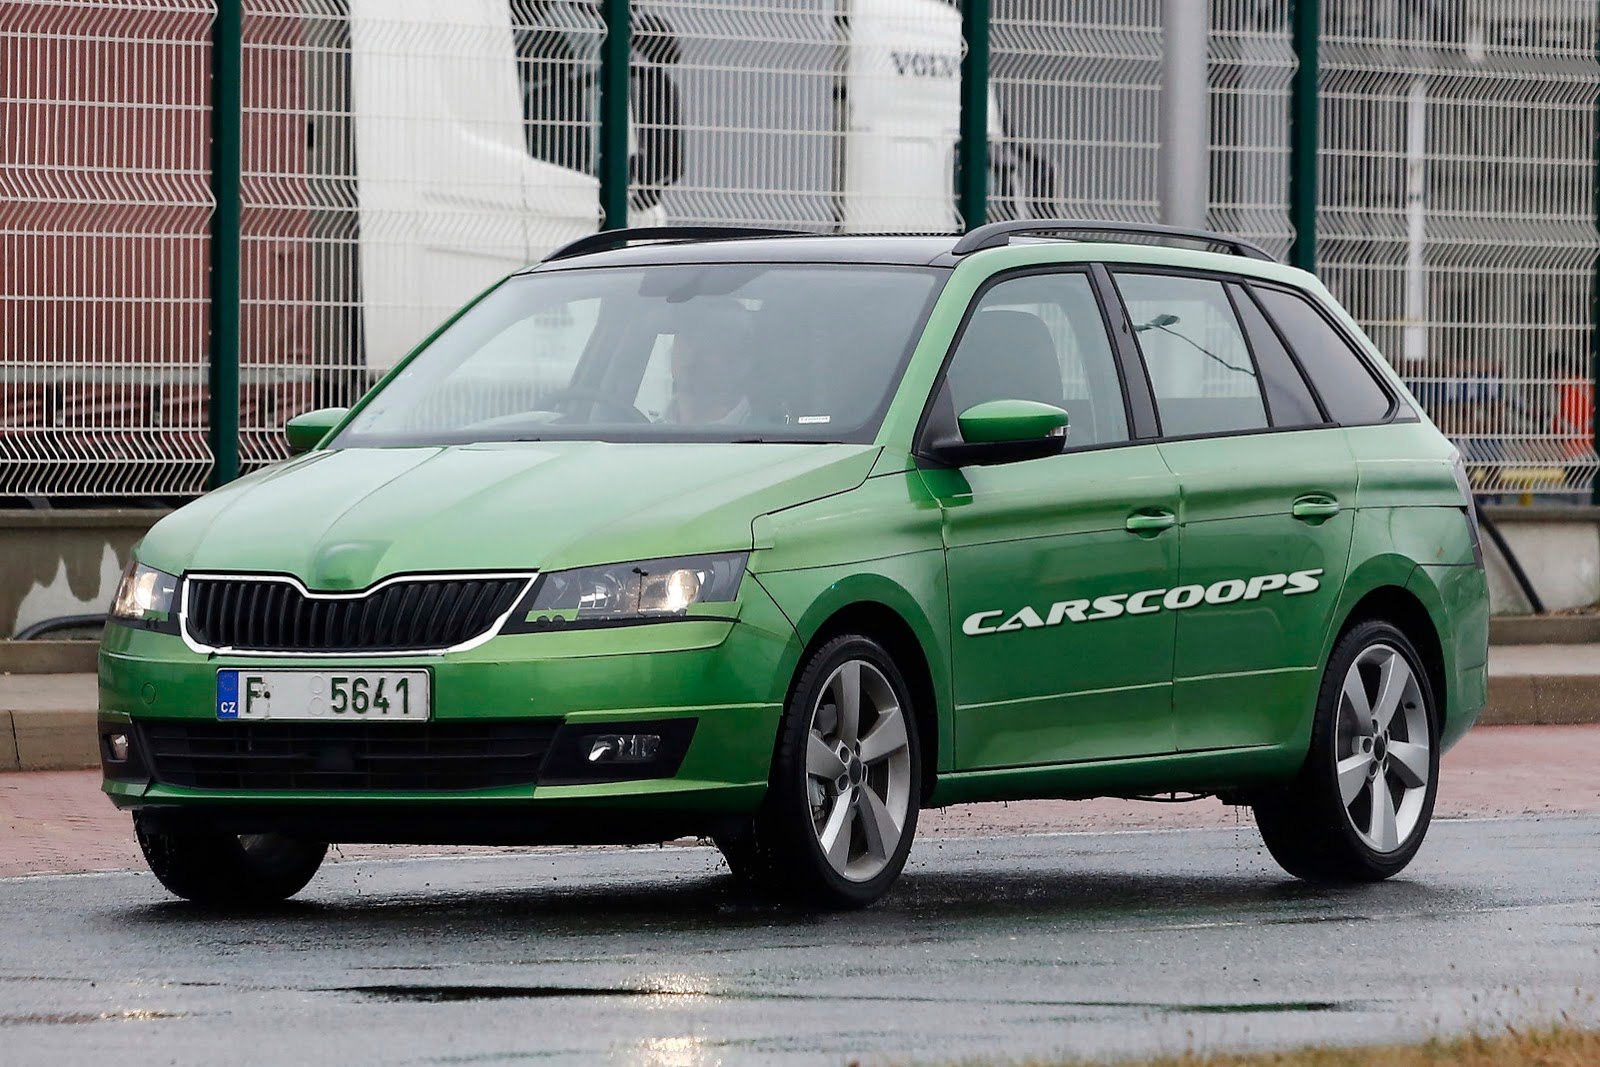 scoop skoda reels out barely camouflaged 2015 fabia combi carscoops. Black Bedroom Furniture Sets. Home Design Ideas